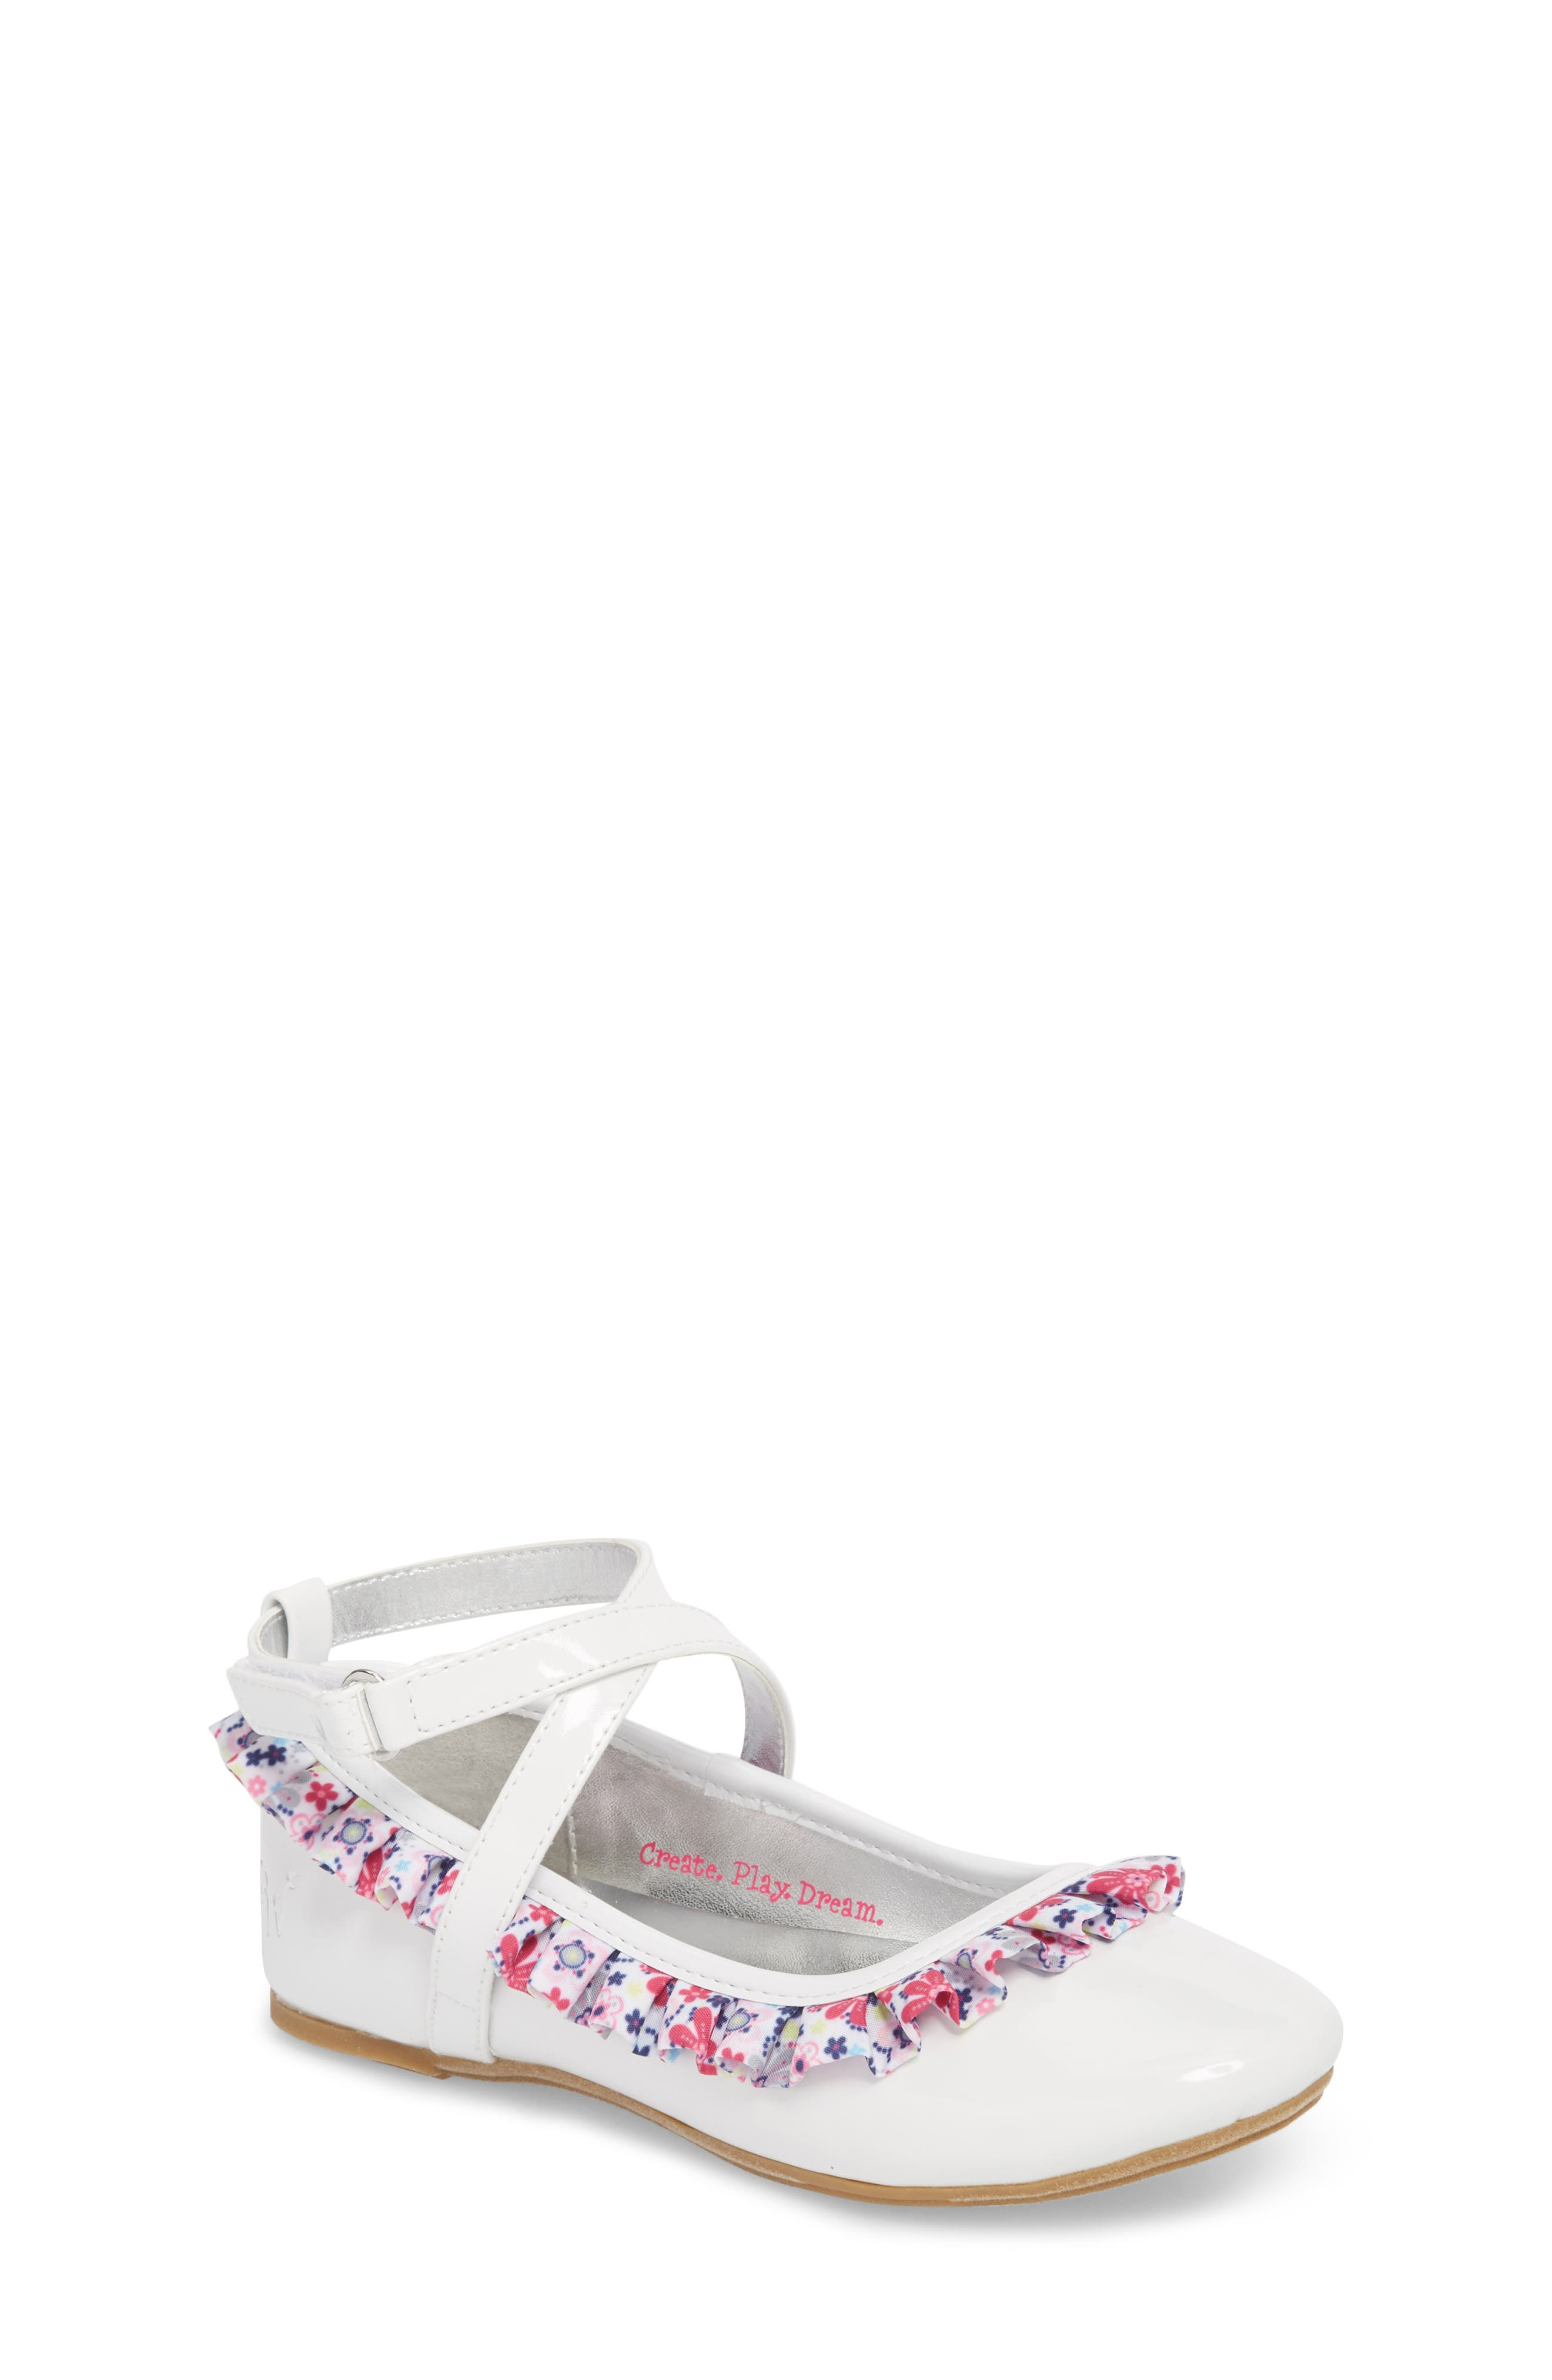 Kendall Ruffle Ballet Flat,                         Main,                         color, 100